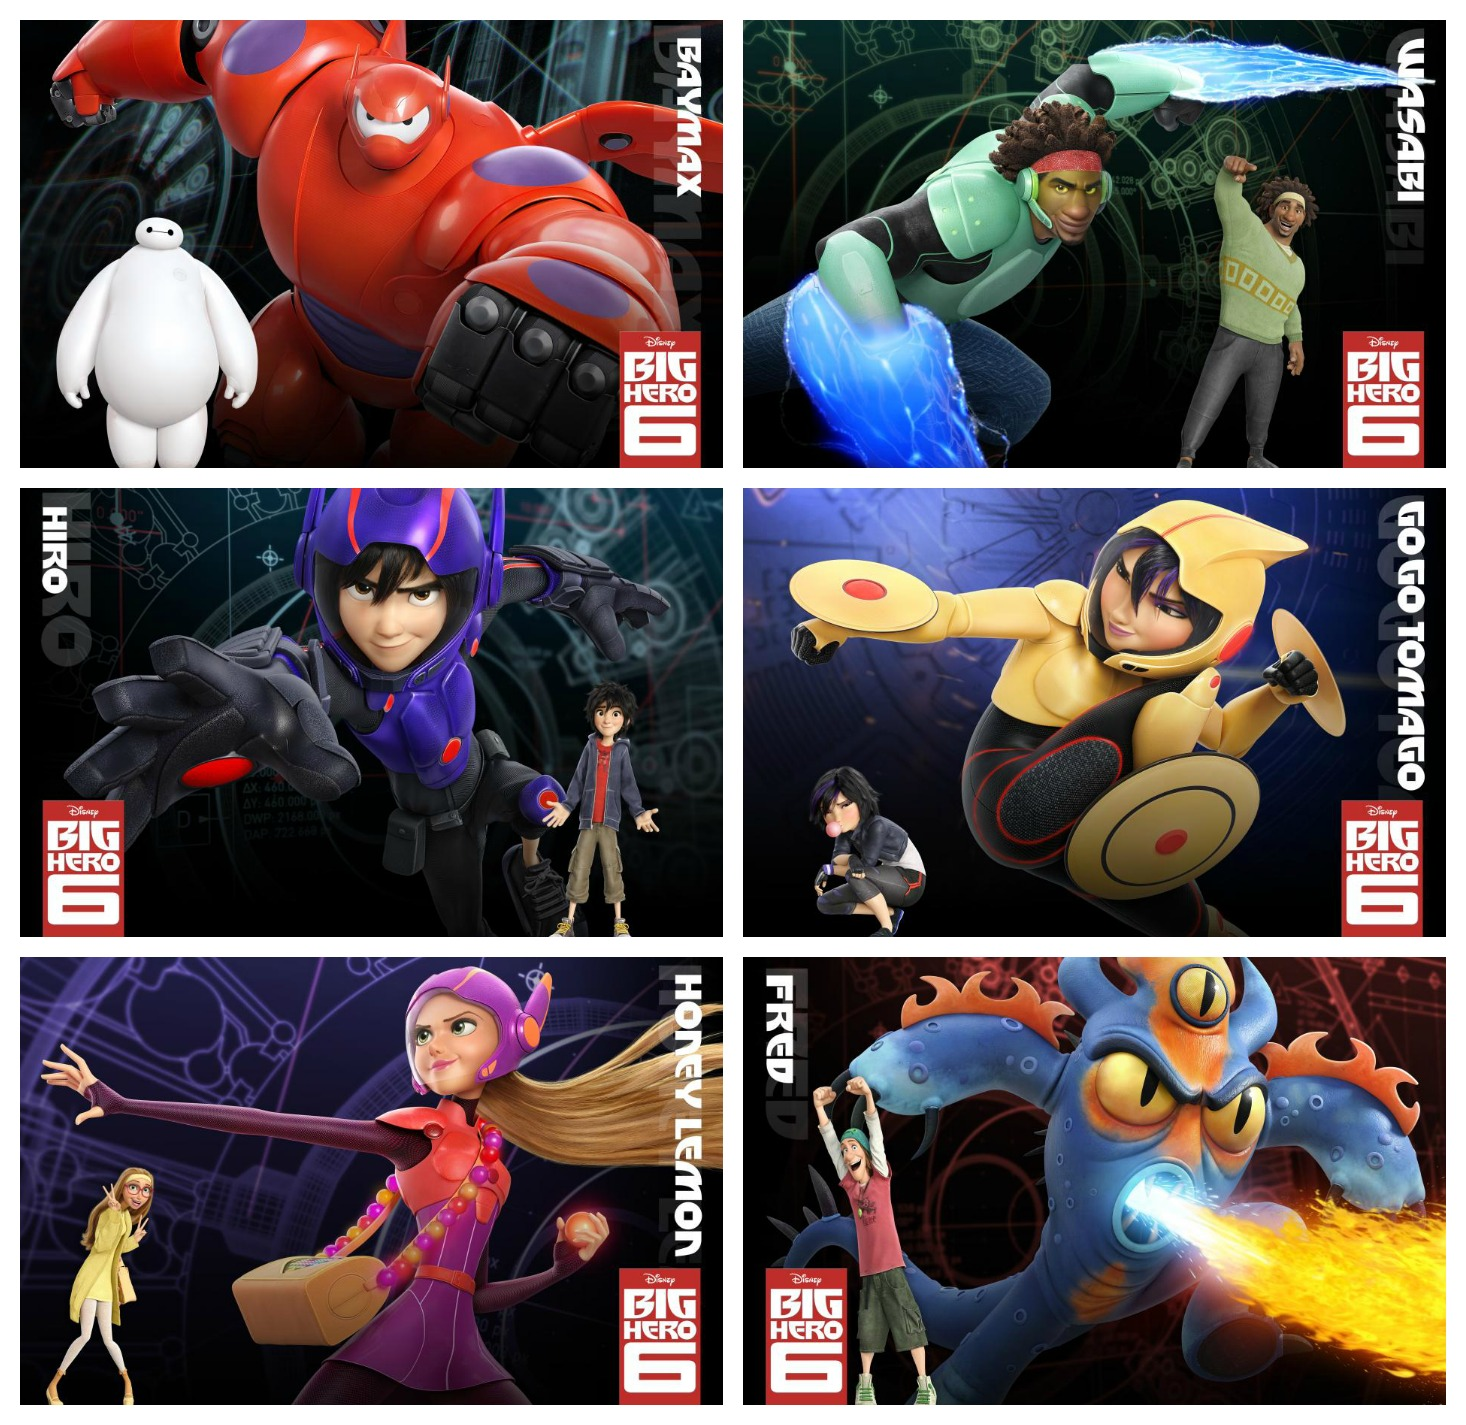 Big Hero 6 Cartoon Characters Names : Big hero fimfiction